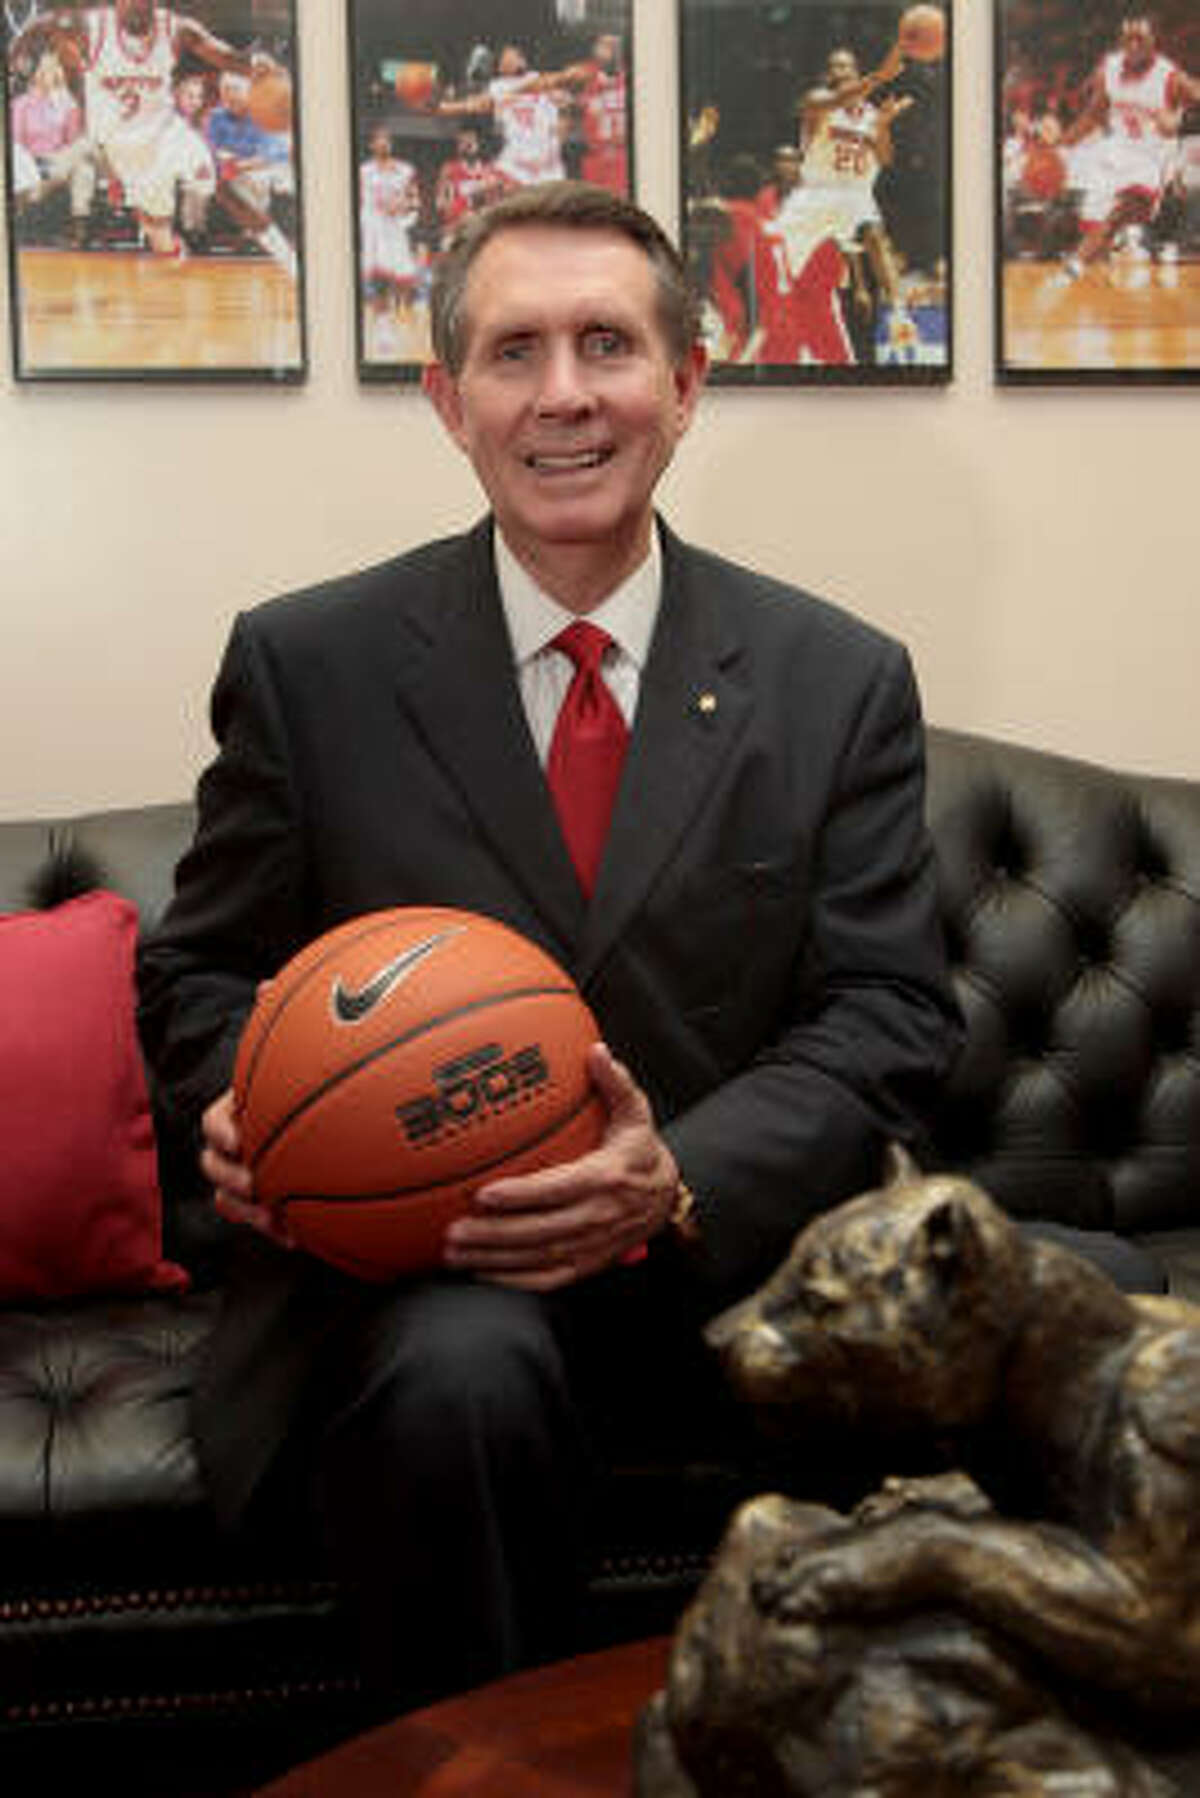 James Dickey sits in his new office on the University of Houston campus. Dickey led Texas Tech to the NCAA Tournament twice and was the Southwest Conference Coach of the Year twice during his 10 years (1991-2001) with the Red Raiders.